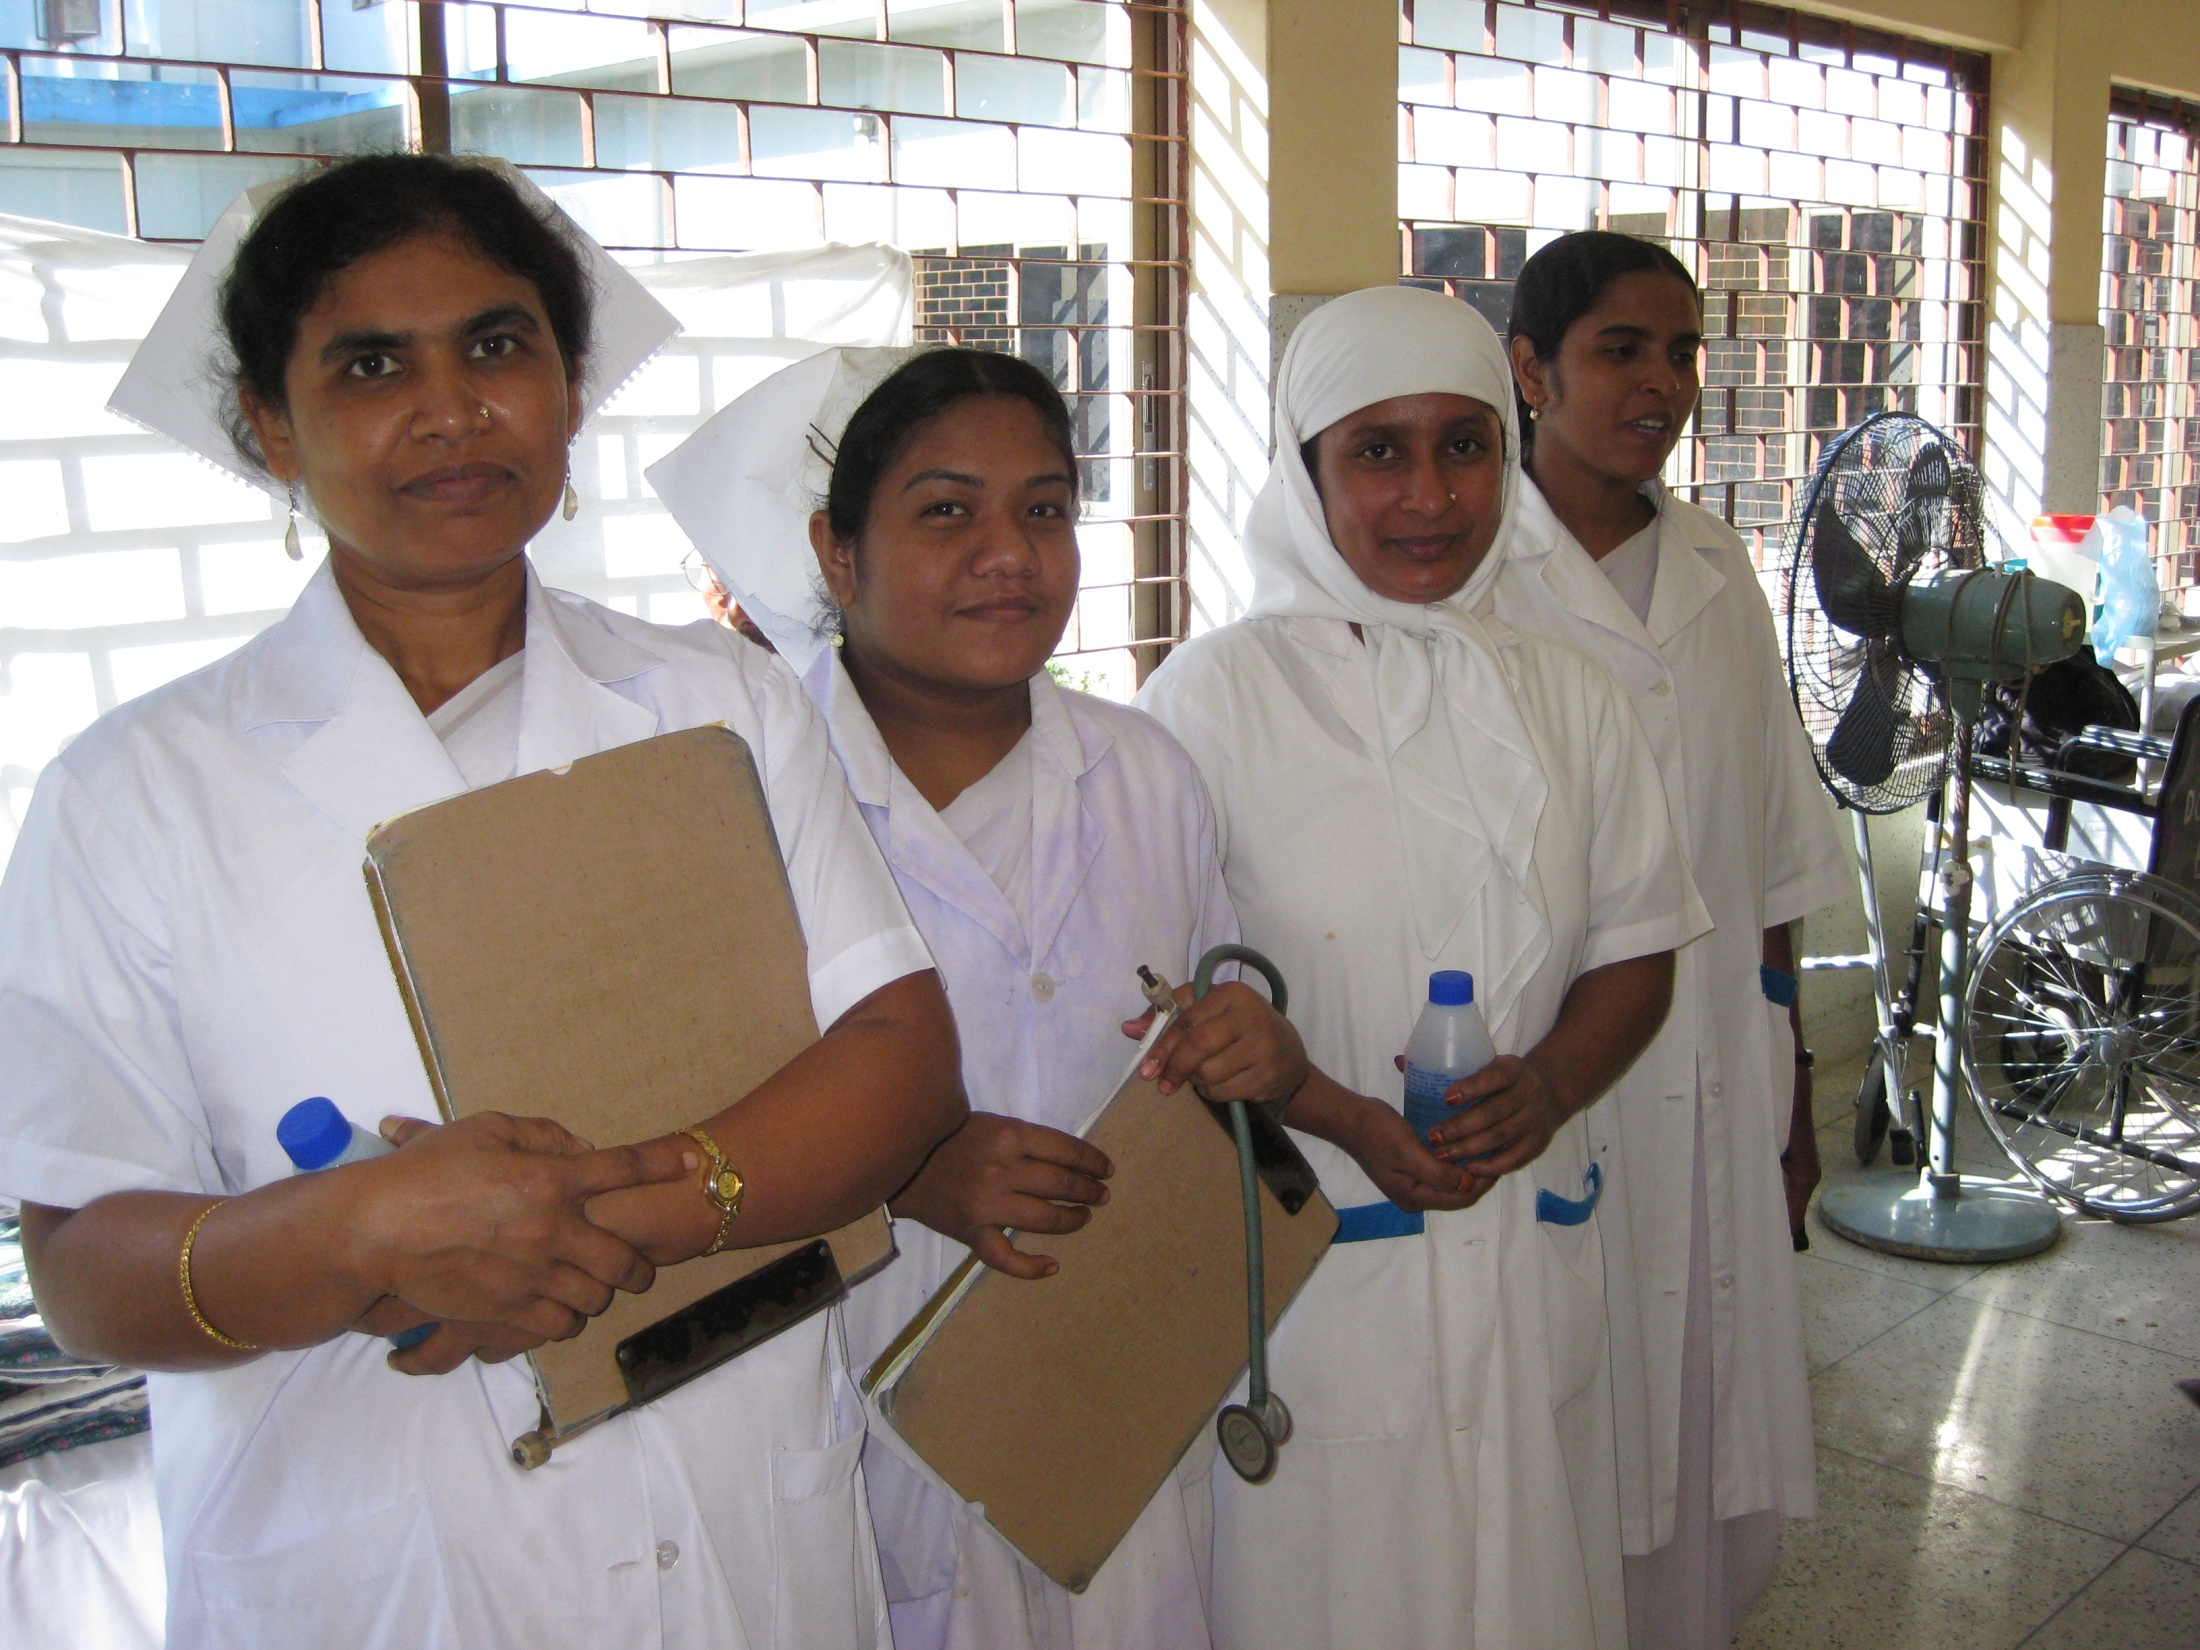 Medical Staff Salaries - There are 4 doctors, and 15 junior and senior nurses on the staff of LHCB. Most are married and support extended families. They provide patient care in the hospital, operating room, outpatient and mobile clinics, and are involved in patient education and Traditional Birth Attendant Training.